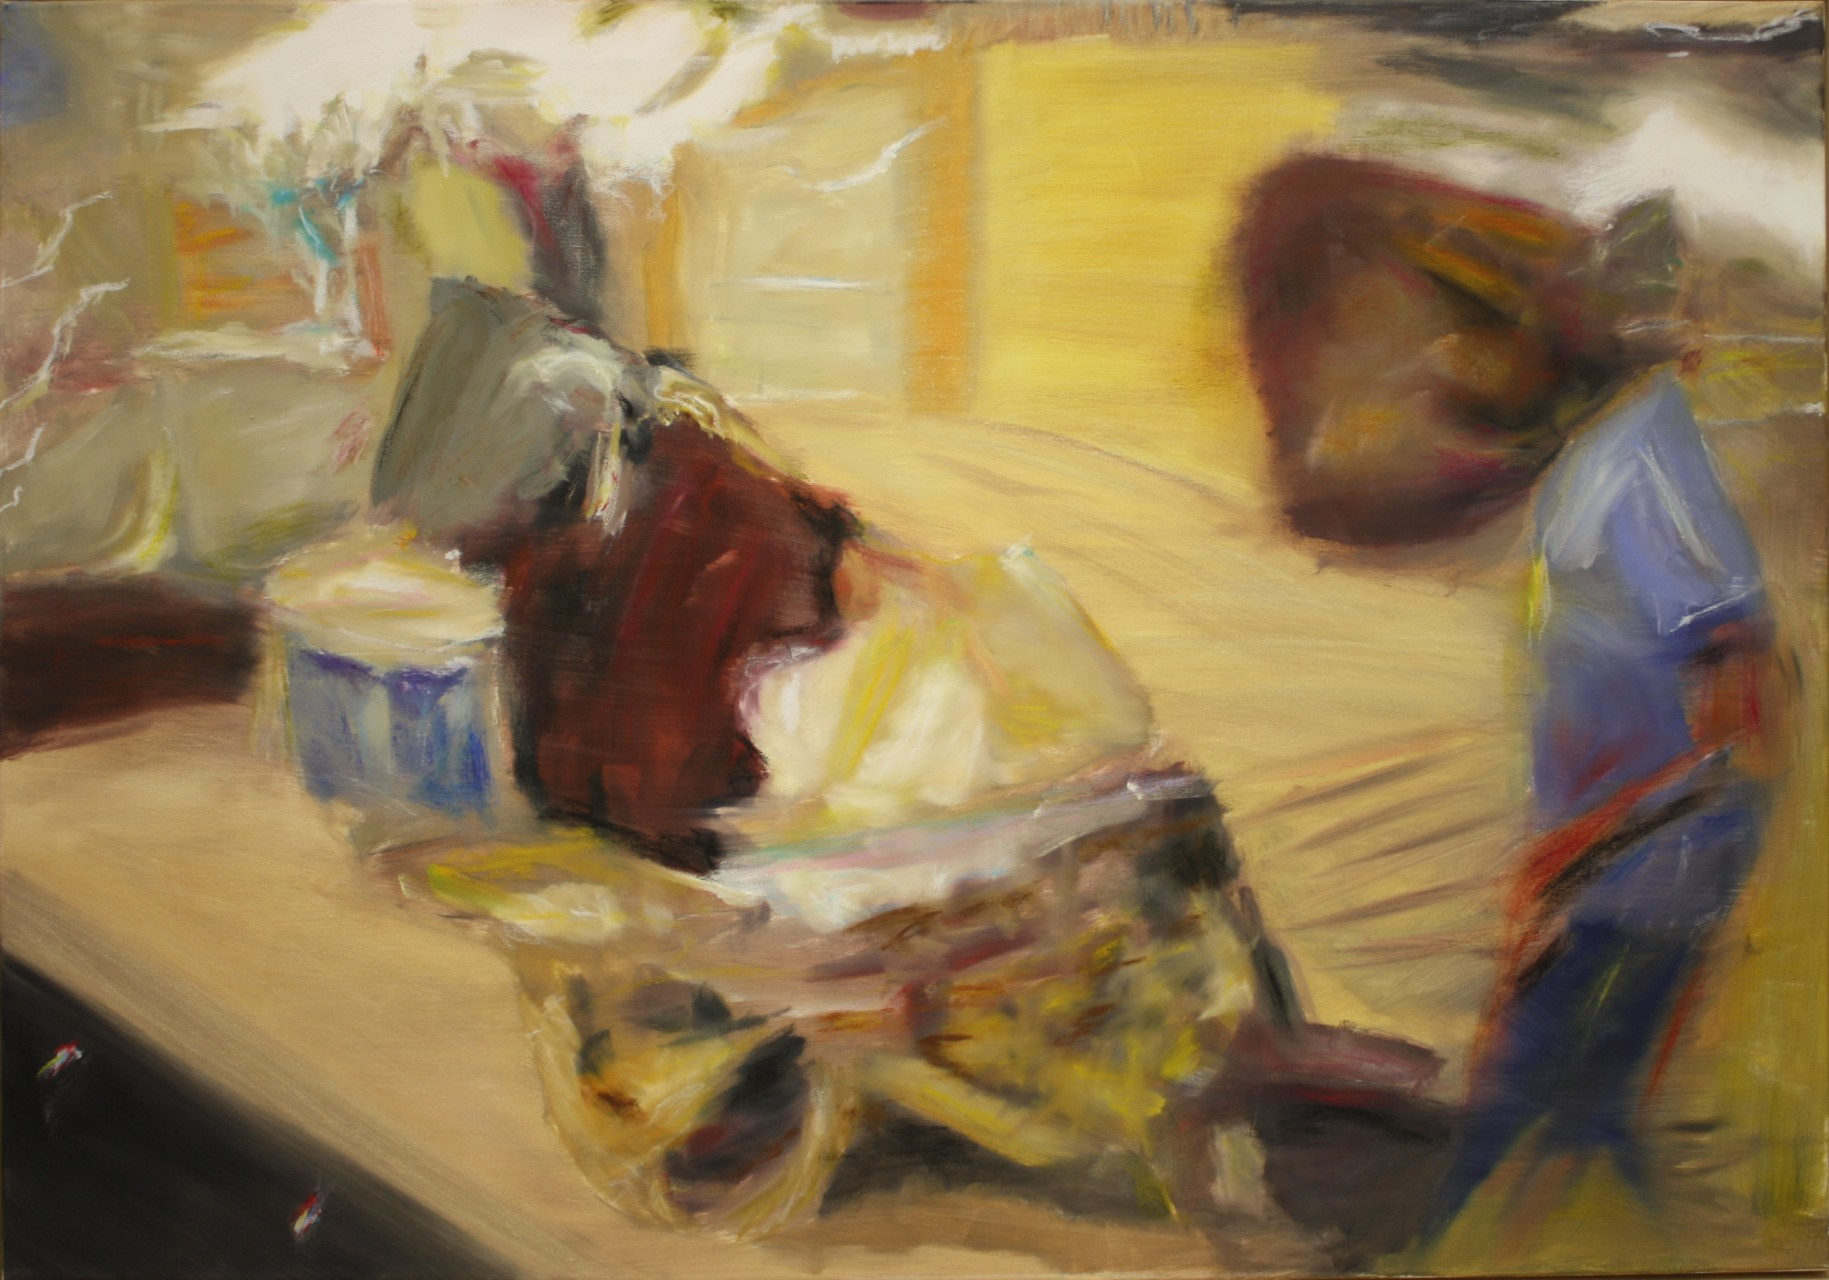 Rundu Man with a wheelbarrow, 2012, oil on canvas, 70 x 100 cm